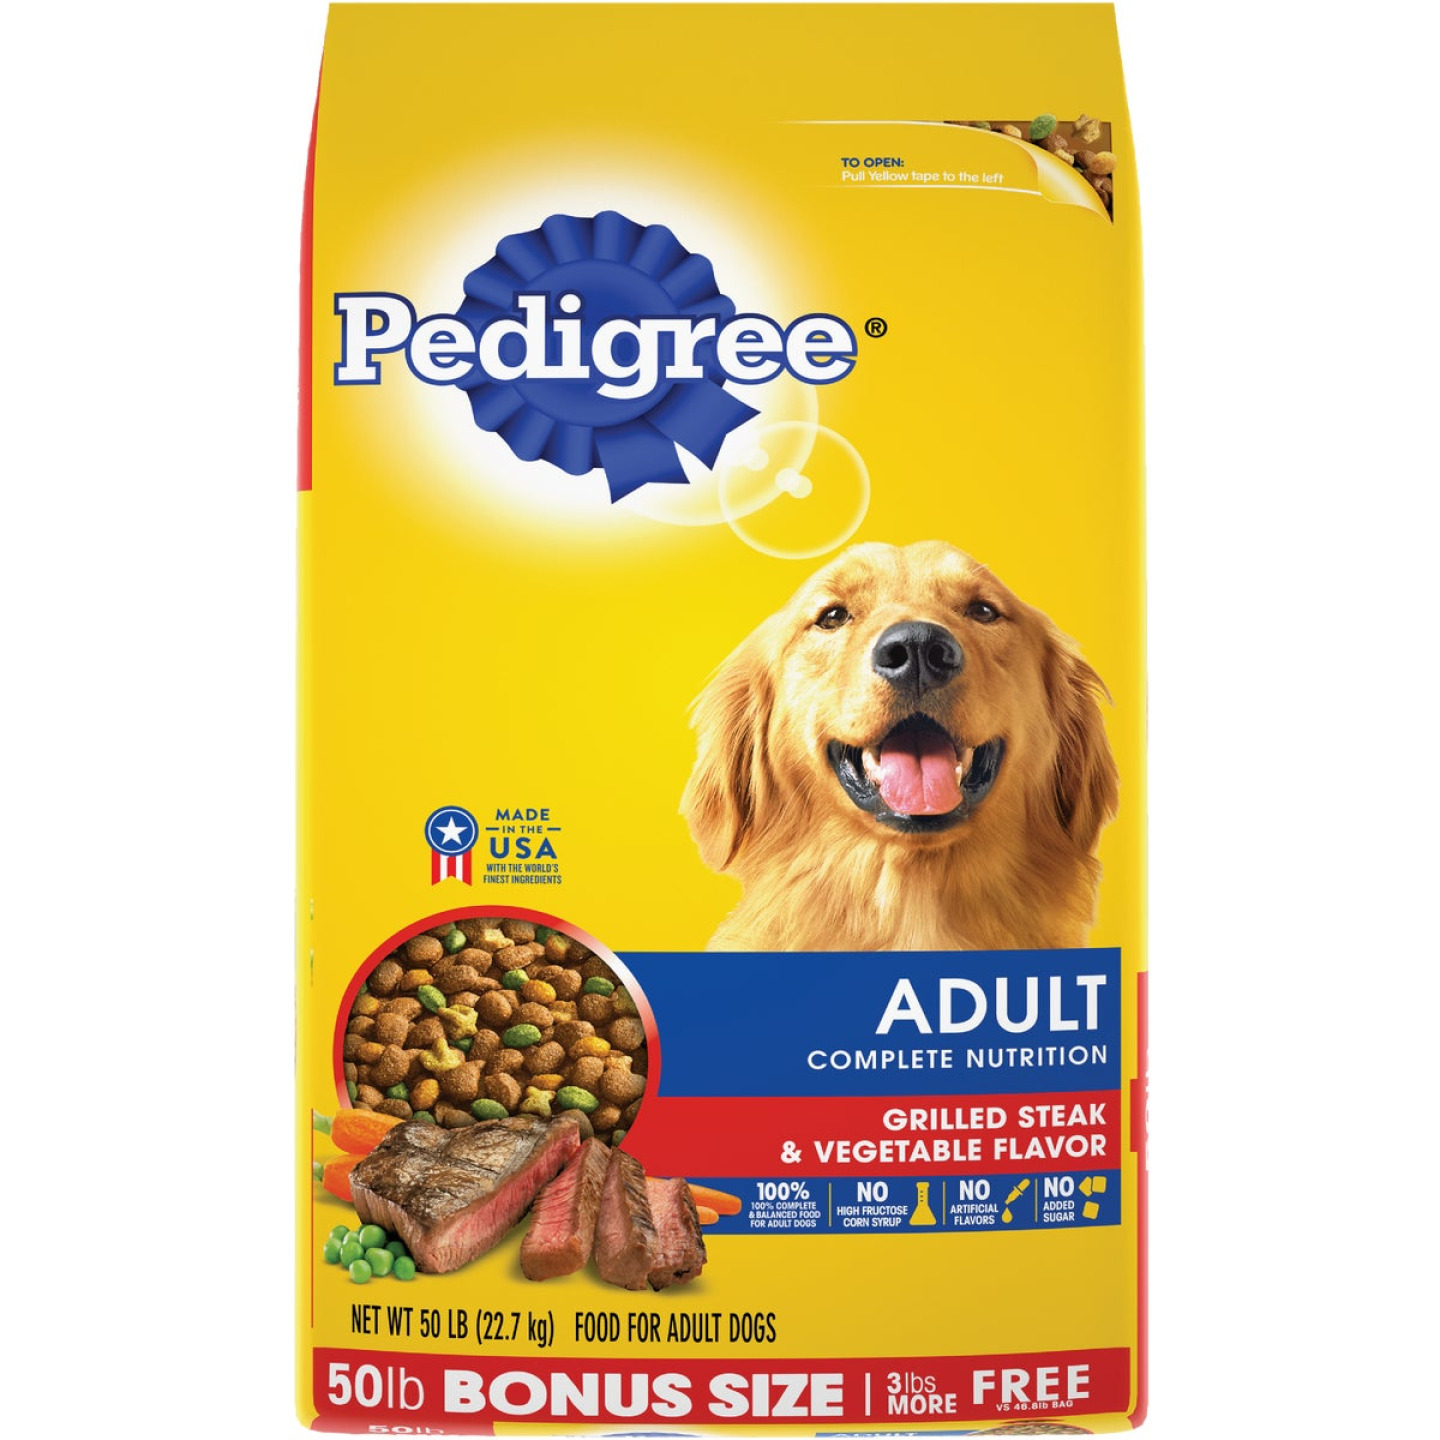 Pedigree Complete Nutrition 50 Lb. Grilled Steak & Vegetable Adult Dry Dog Food Image 1